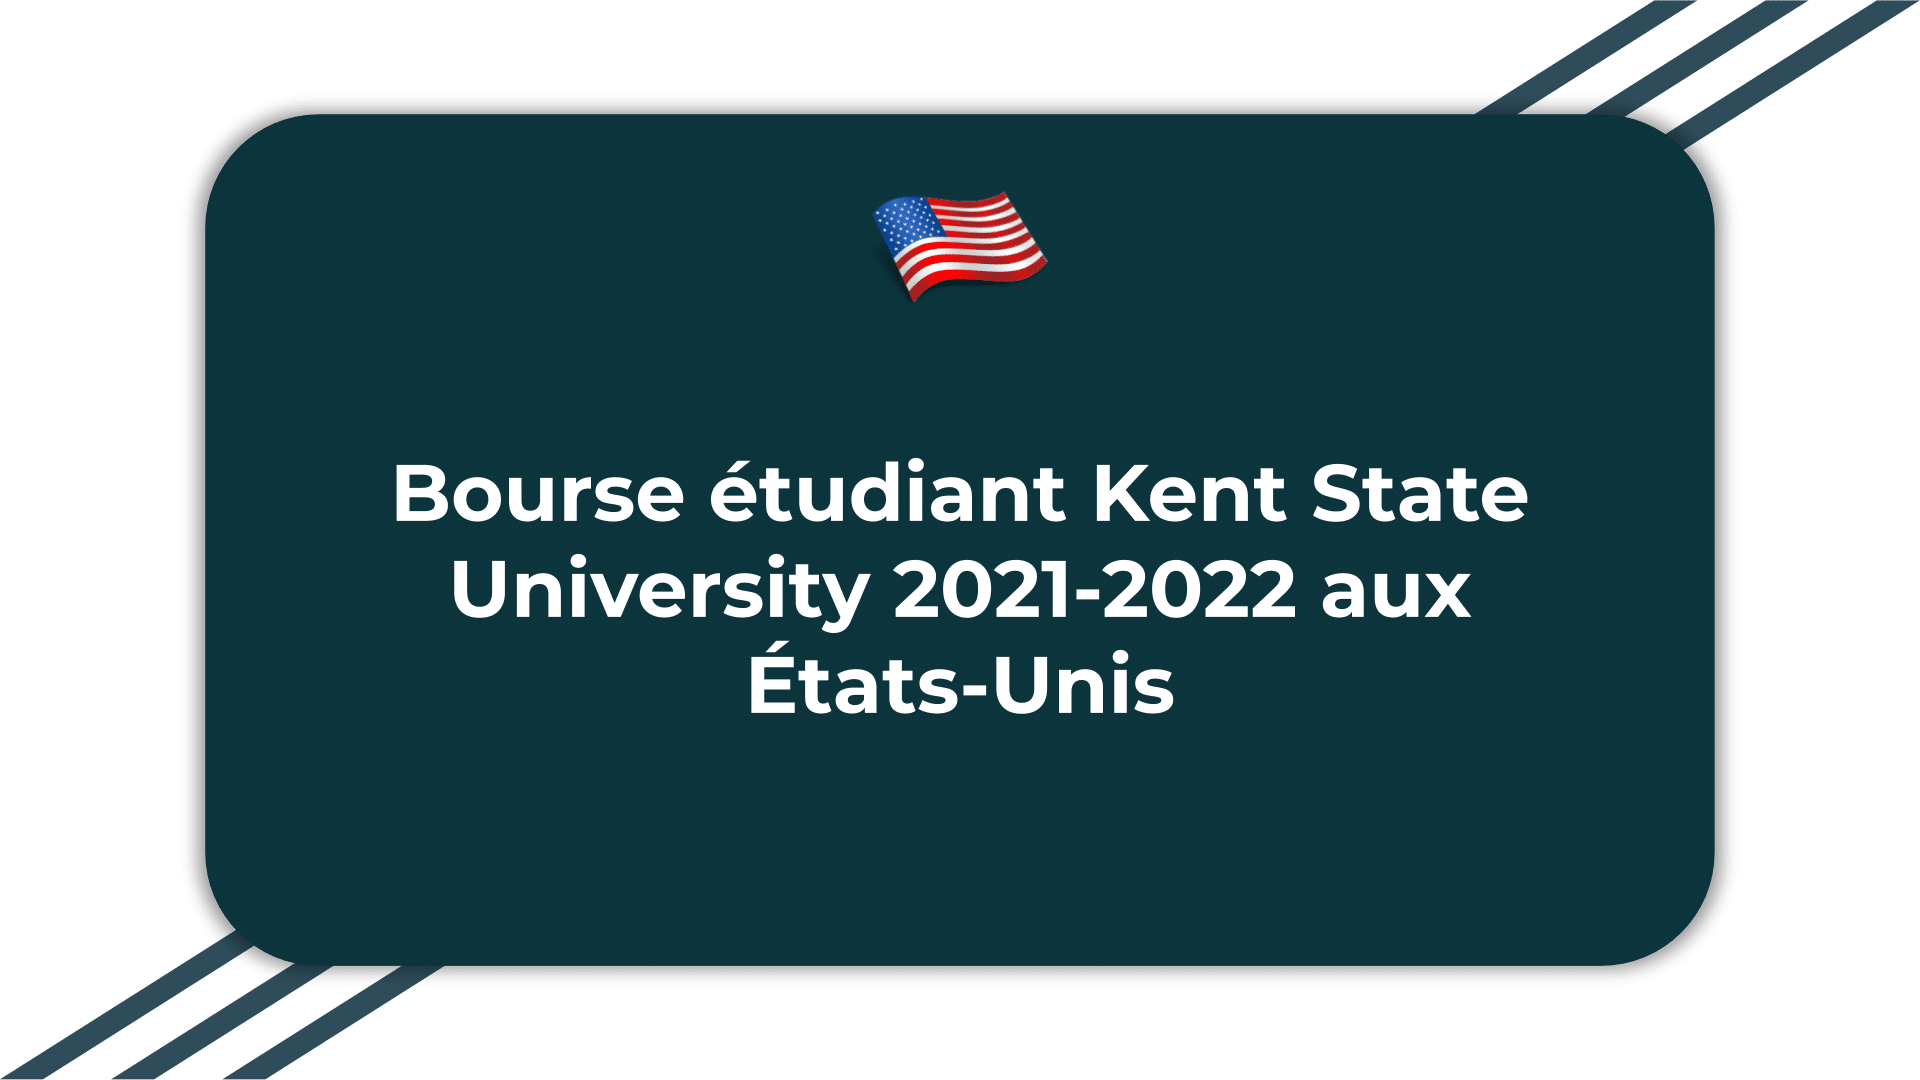 Bourse étudiant Kent State University